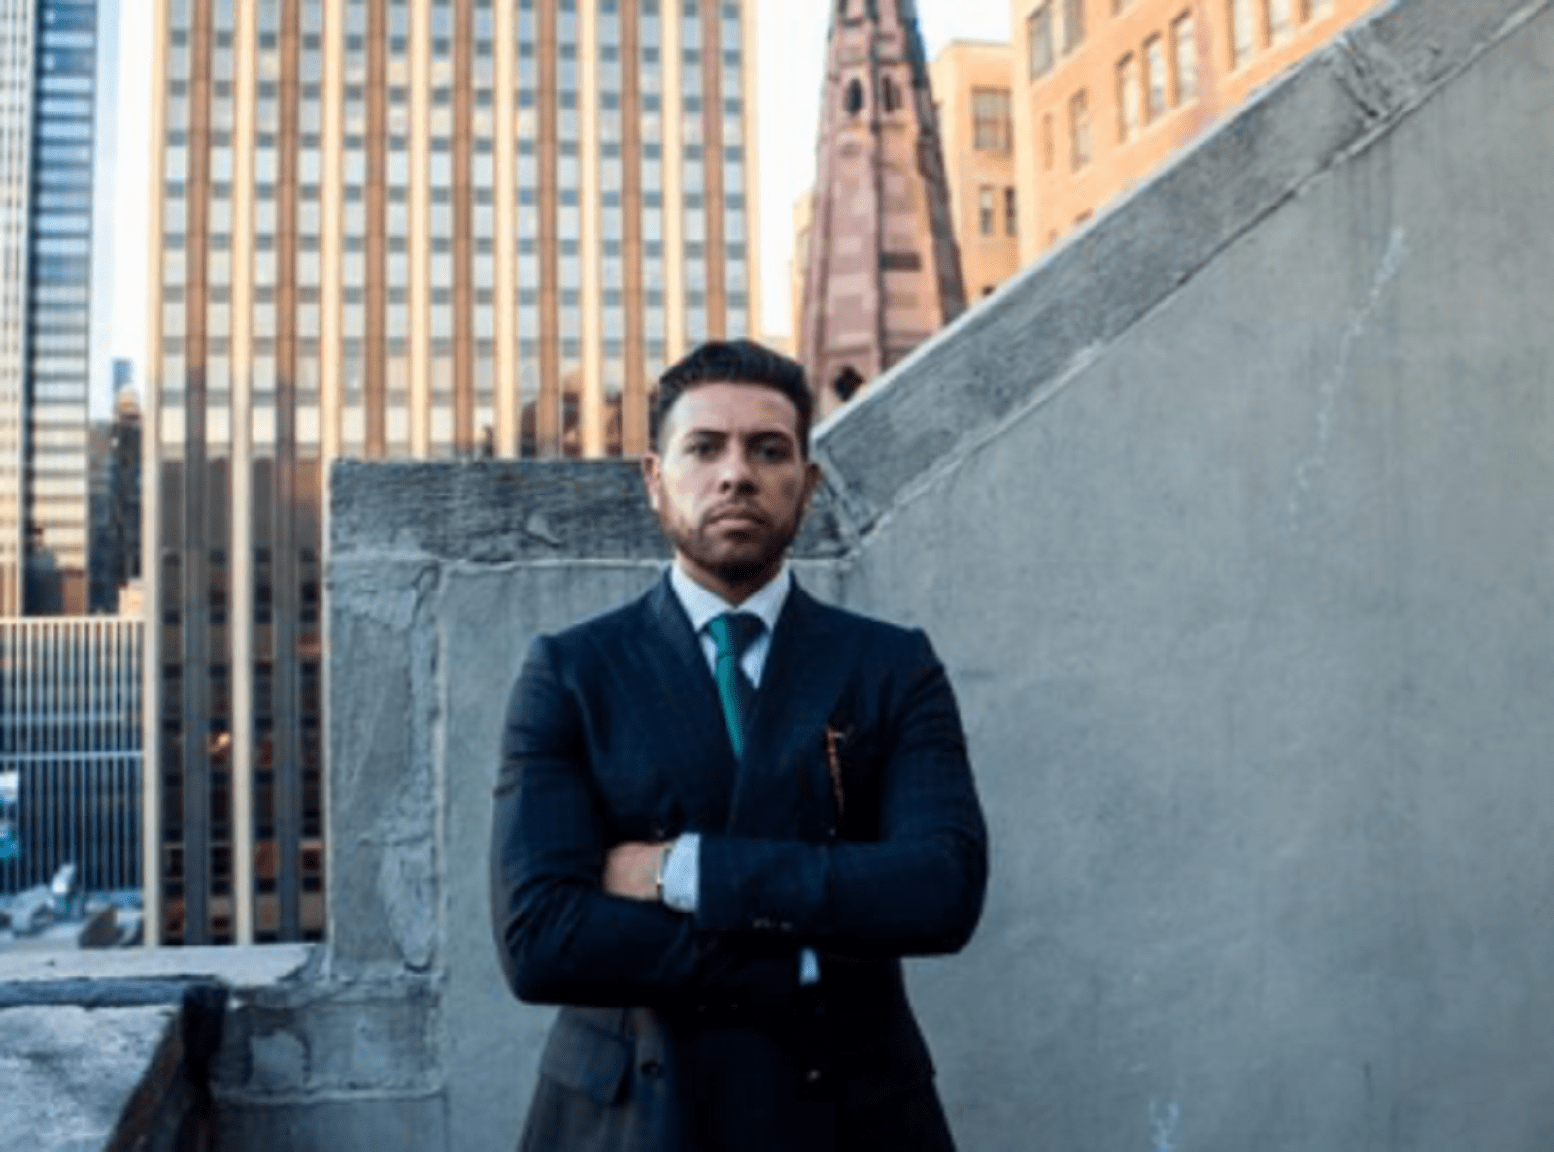 leaders create leaders motivational series by gerard adams gerard adams is a young entrepreneur and millennial branding expert the philanthropist and business executive is best known as co founder of elite daily